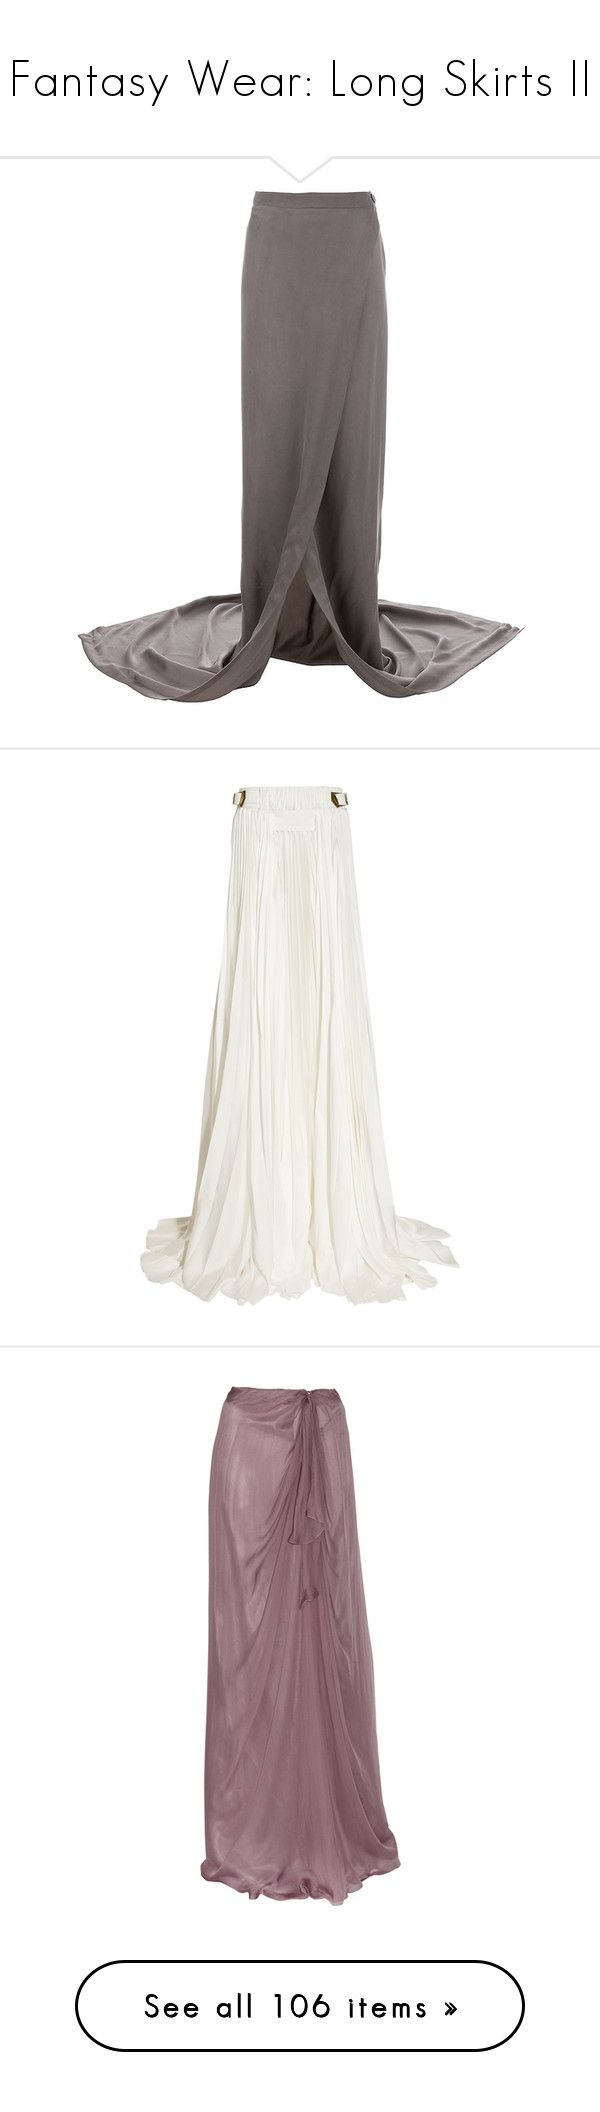 """""""Fantasy Wear: Long Skirts II"""" by savagedamsel ❤ liked on Polyvore featuring skirts, bottoms, ankle length skirt, maxi length skirts, long skirts, maxi skirt, grey skirt, dresses, balmain and long pleated maxi skirt"""